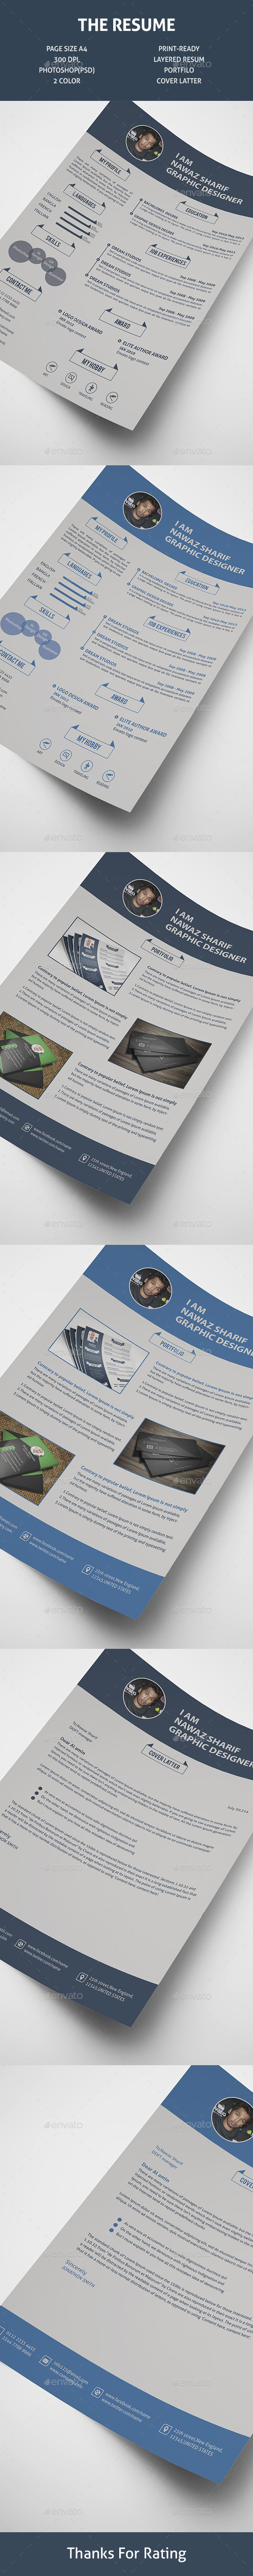 GraphicRiver Resume V2 11936168